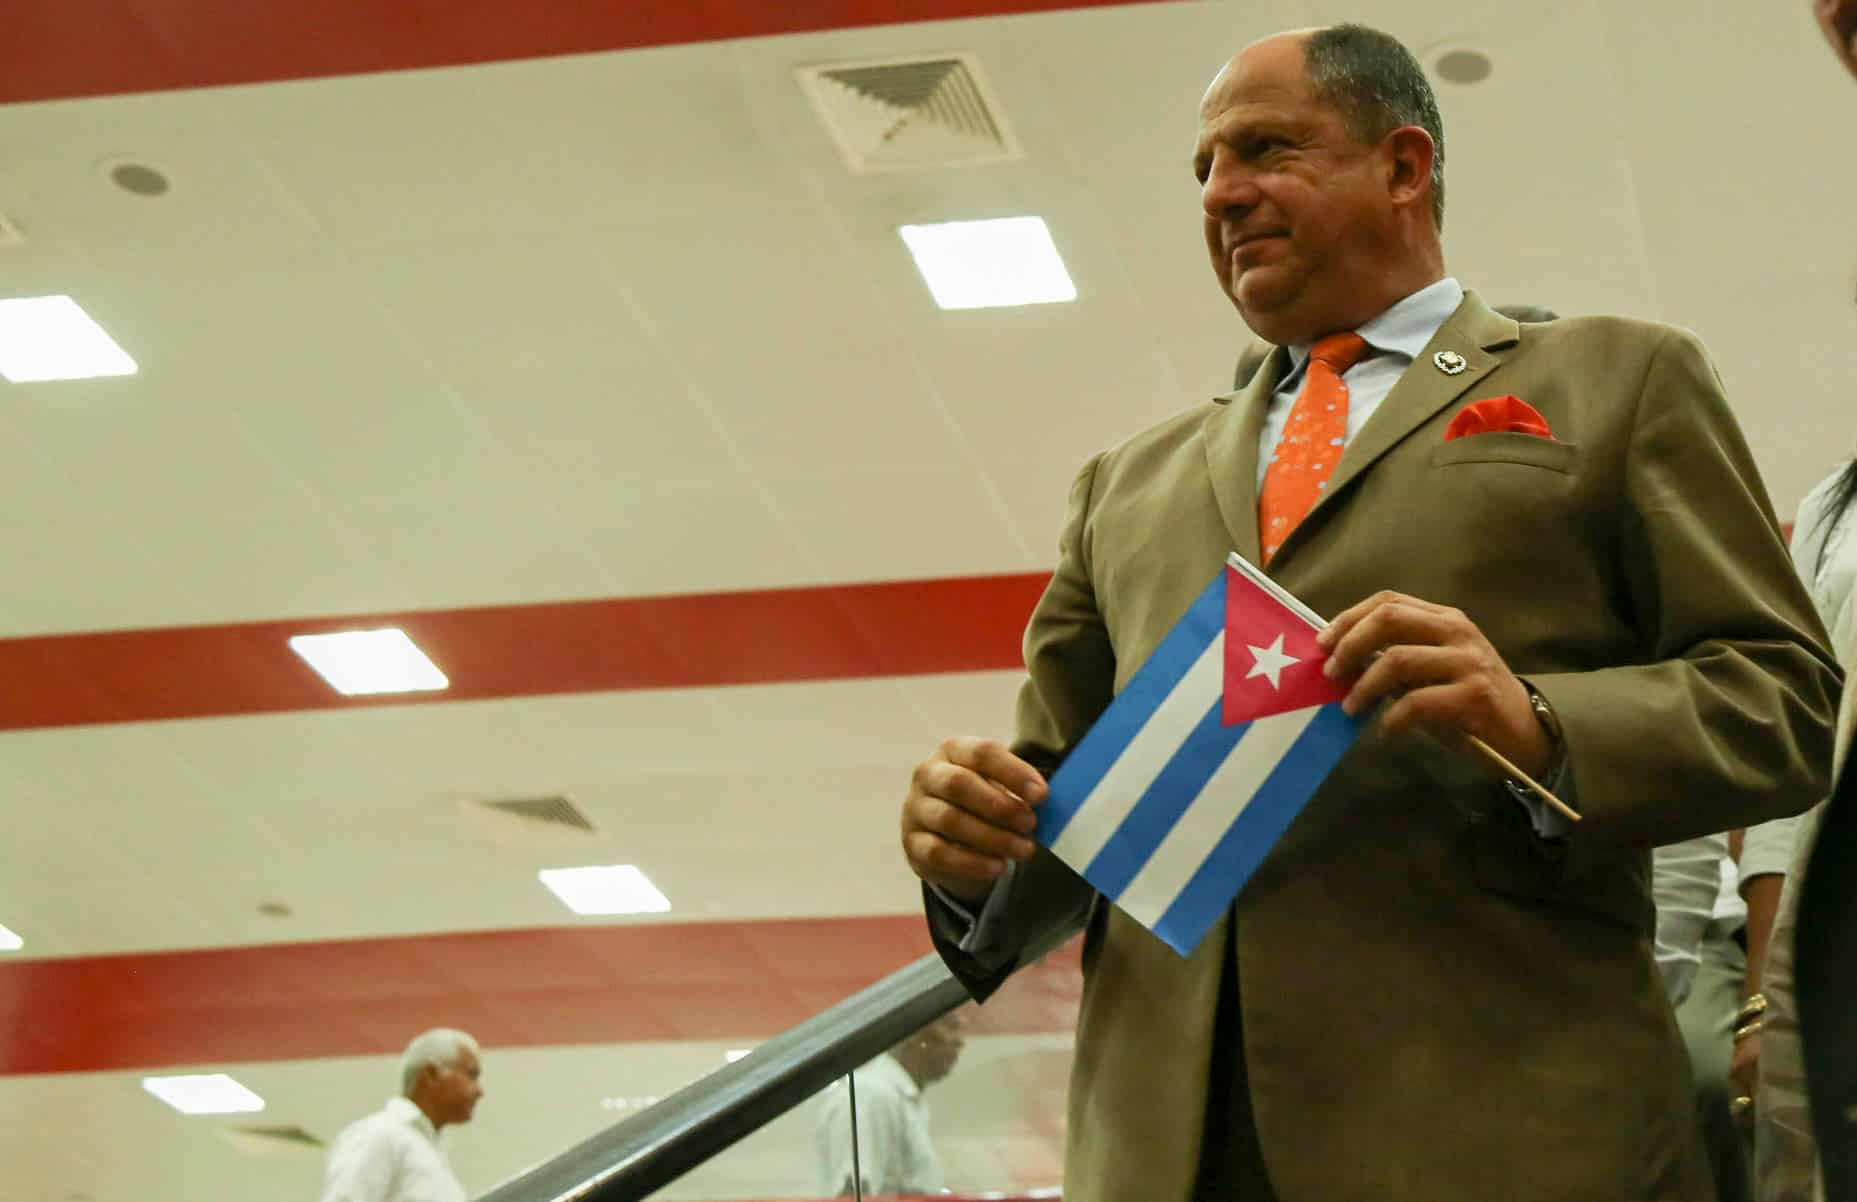 Costa Rica President Luis Guillermo Solís addresses Cuban migrants crisis during Cuba visit